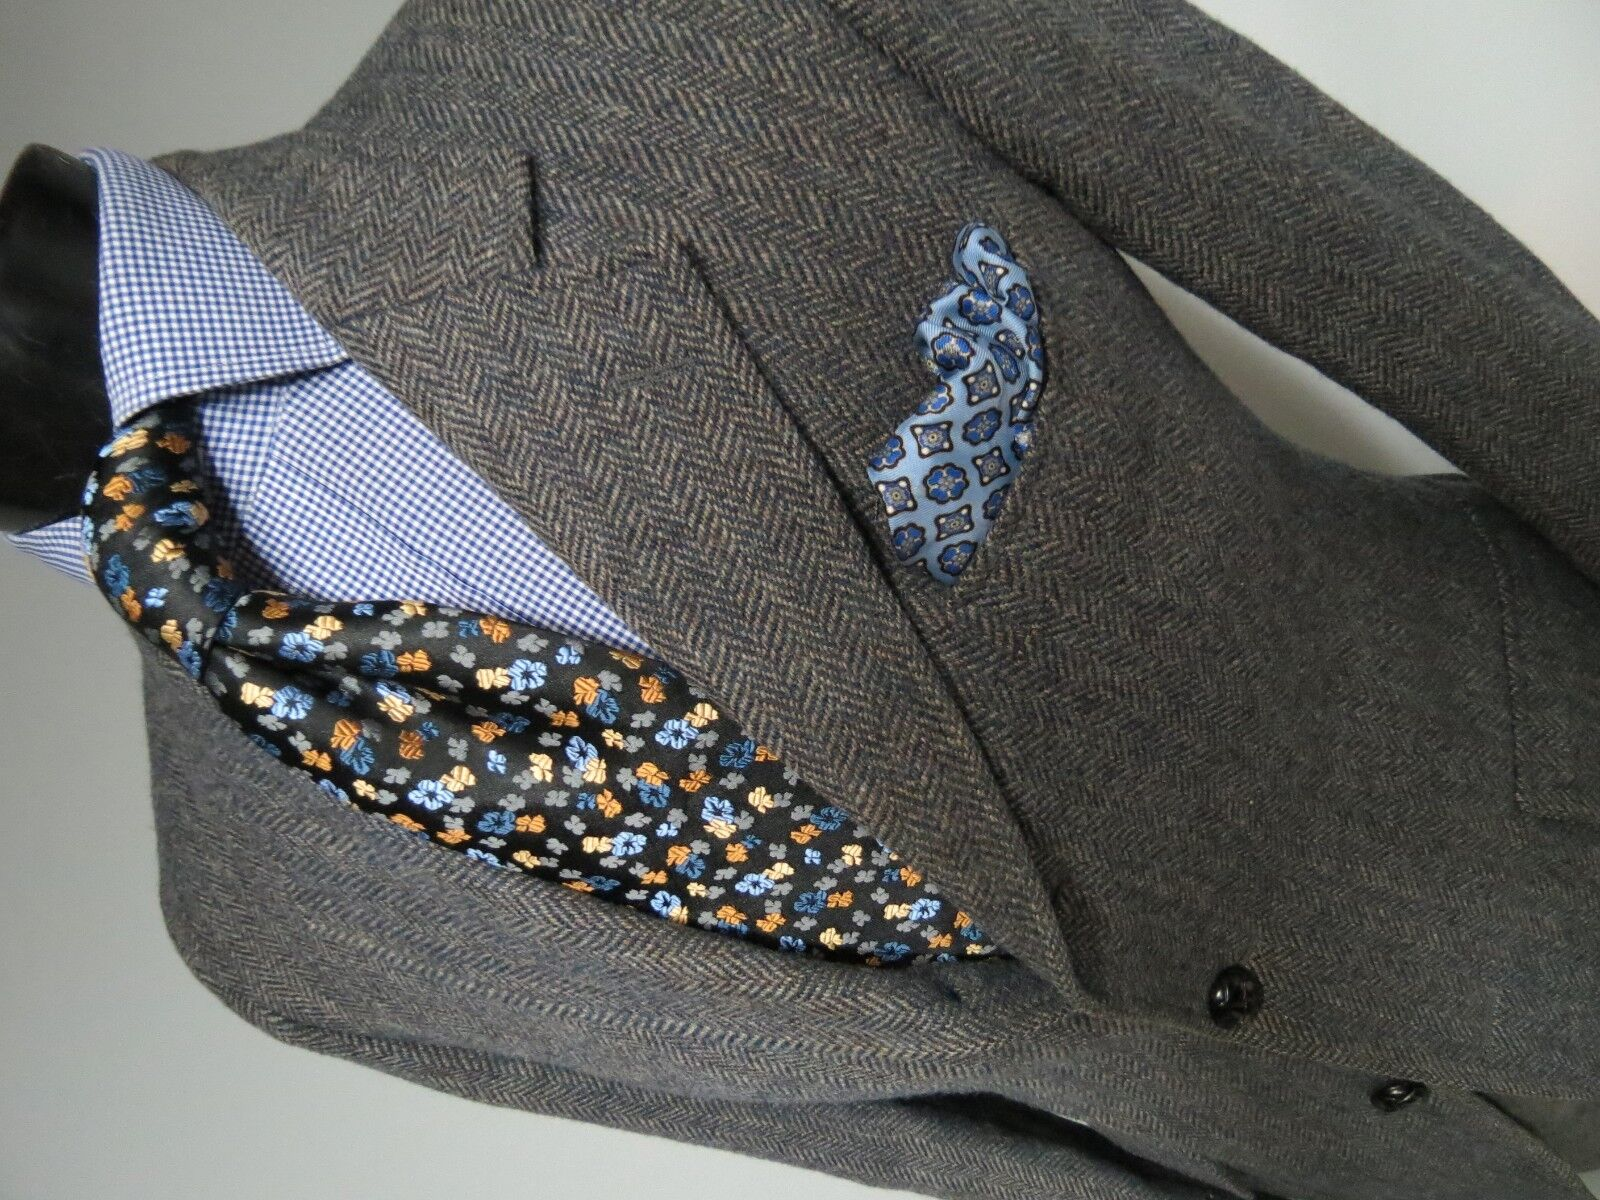 Gorgeous Vintage Arthur M Rosenberg Model= Bryan English tweed sport coat 40 R